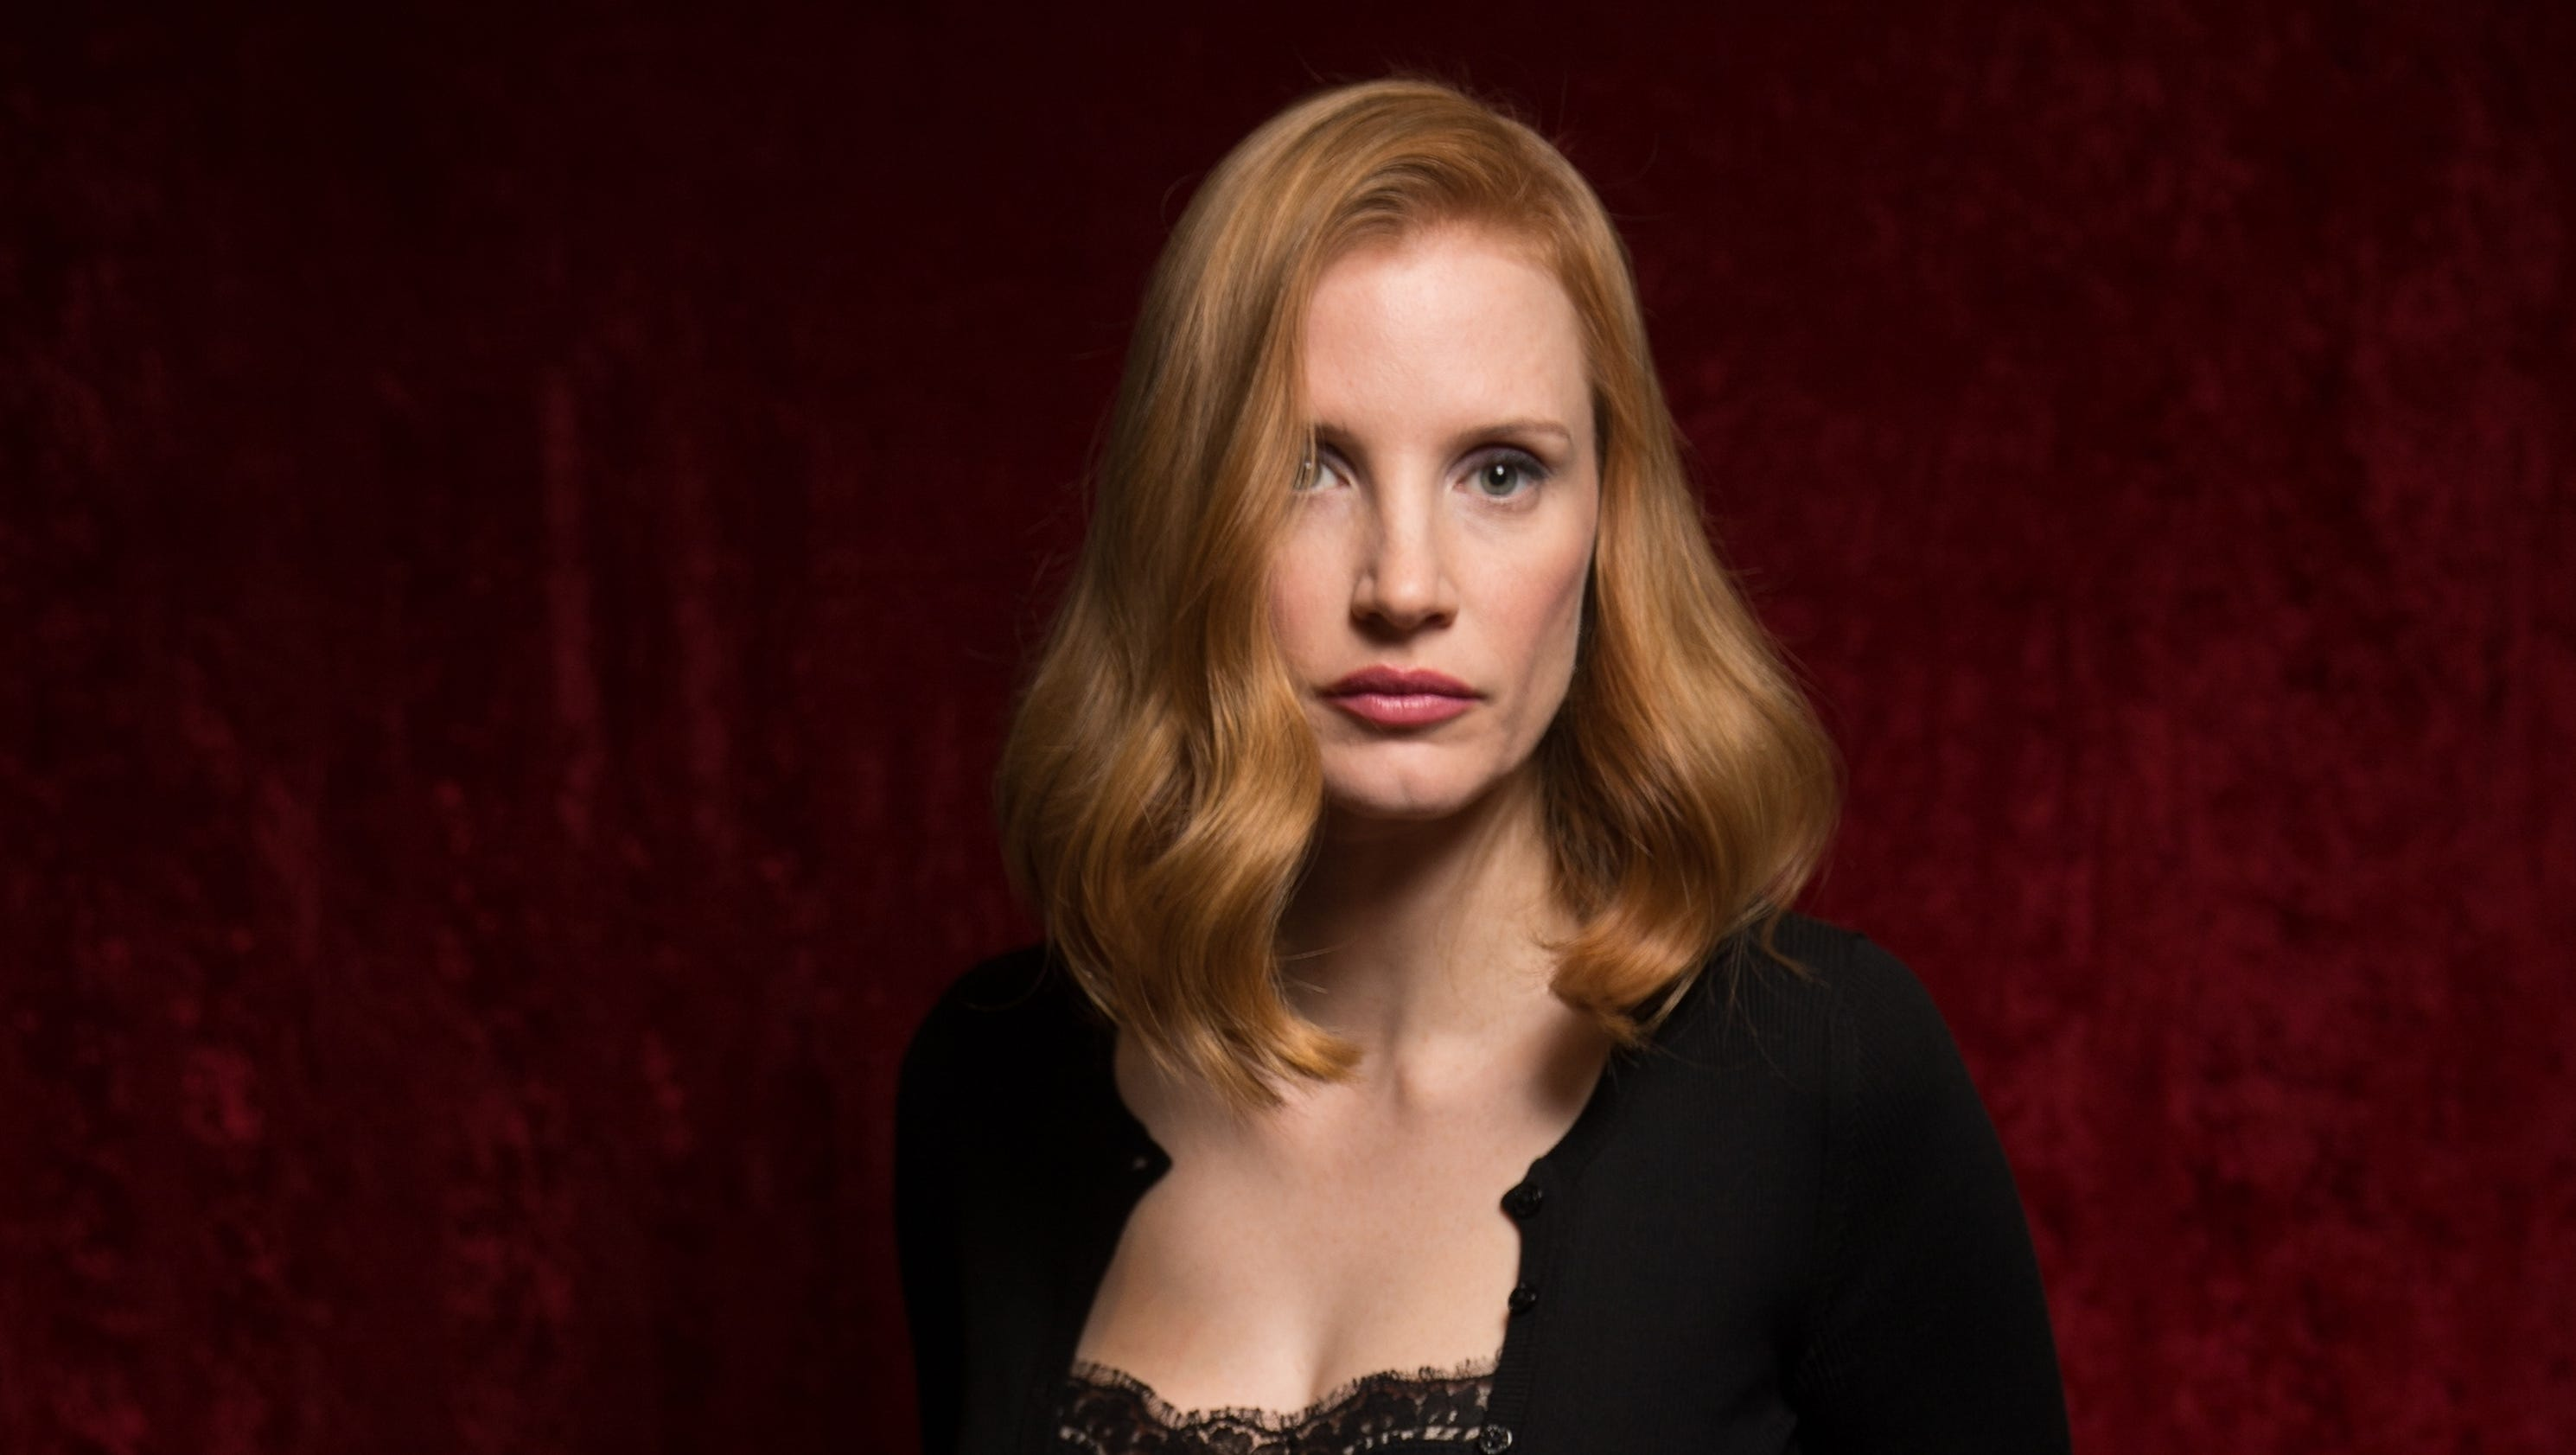 Jessica Chastain: What's wrong with being ambitious?